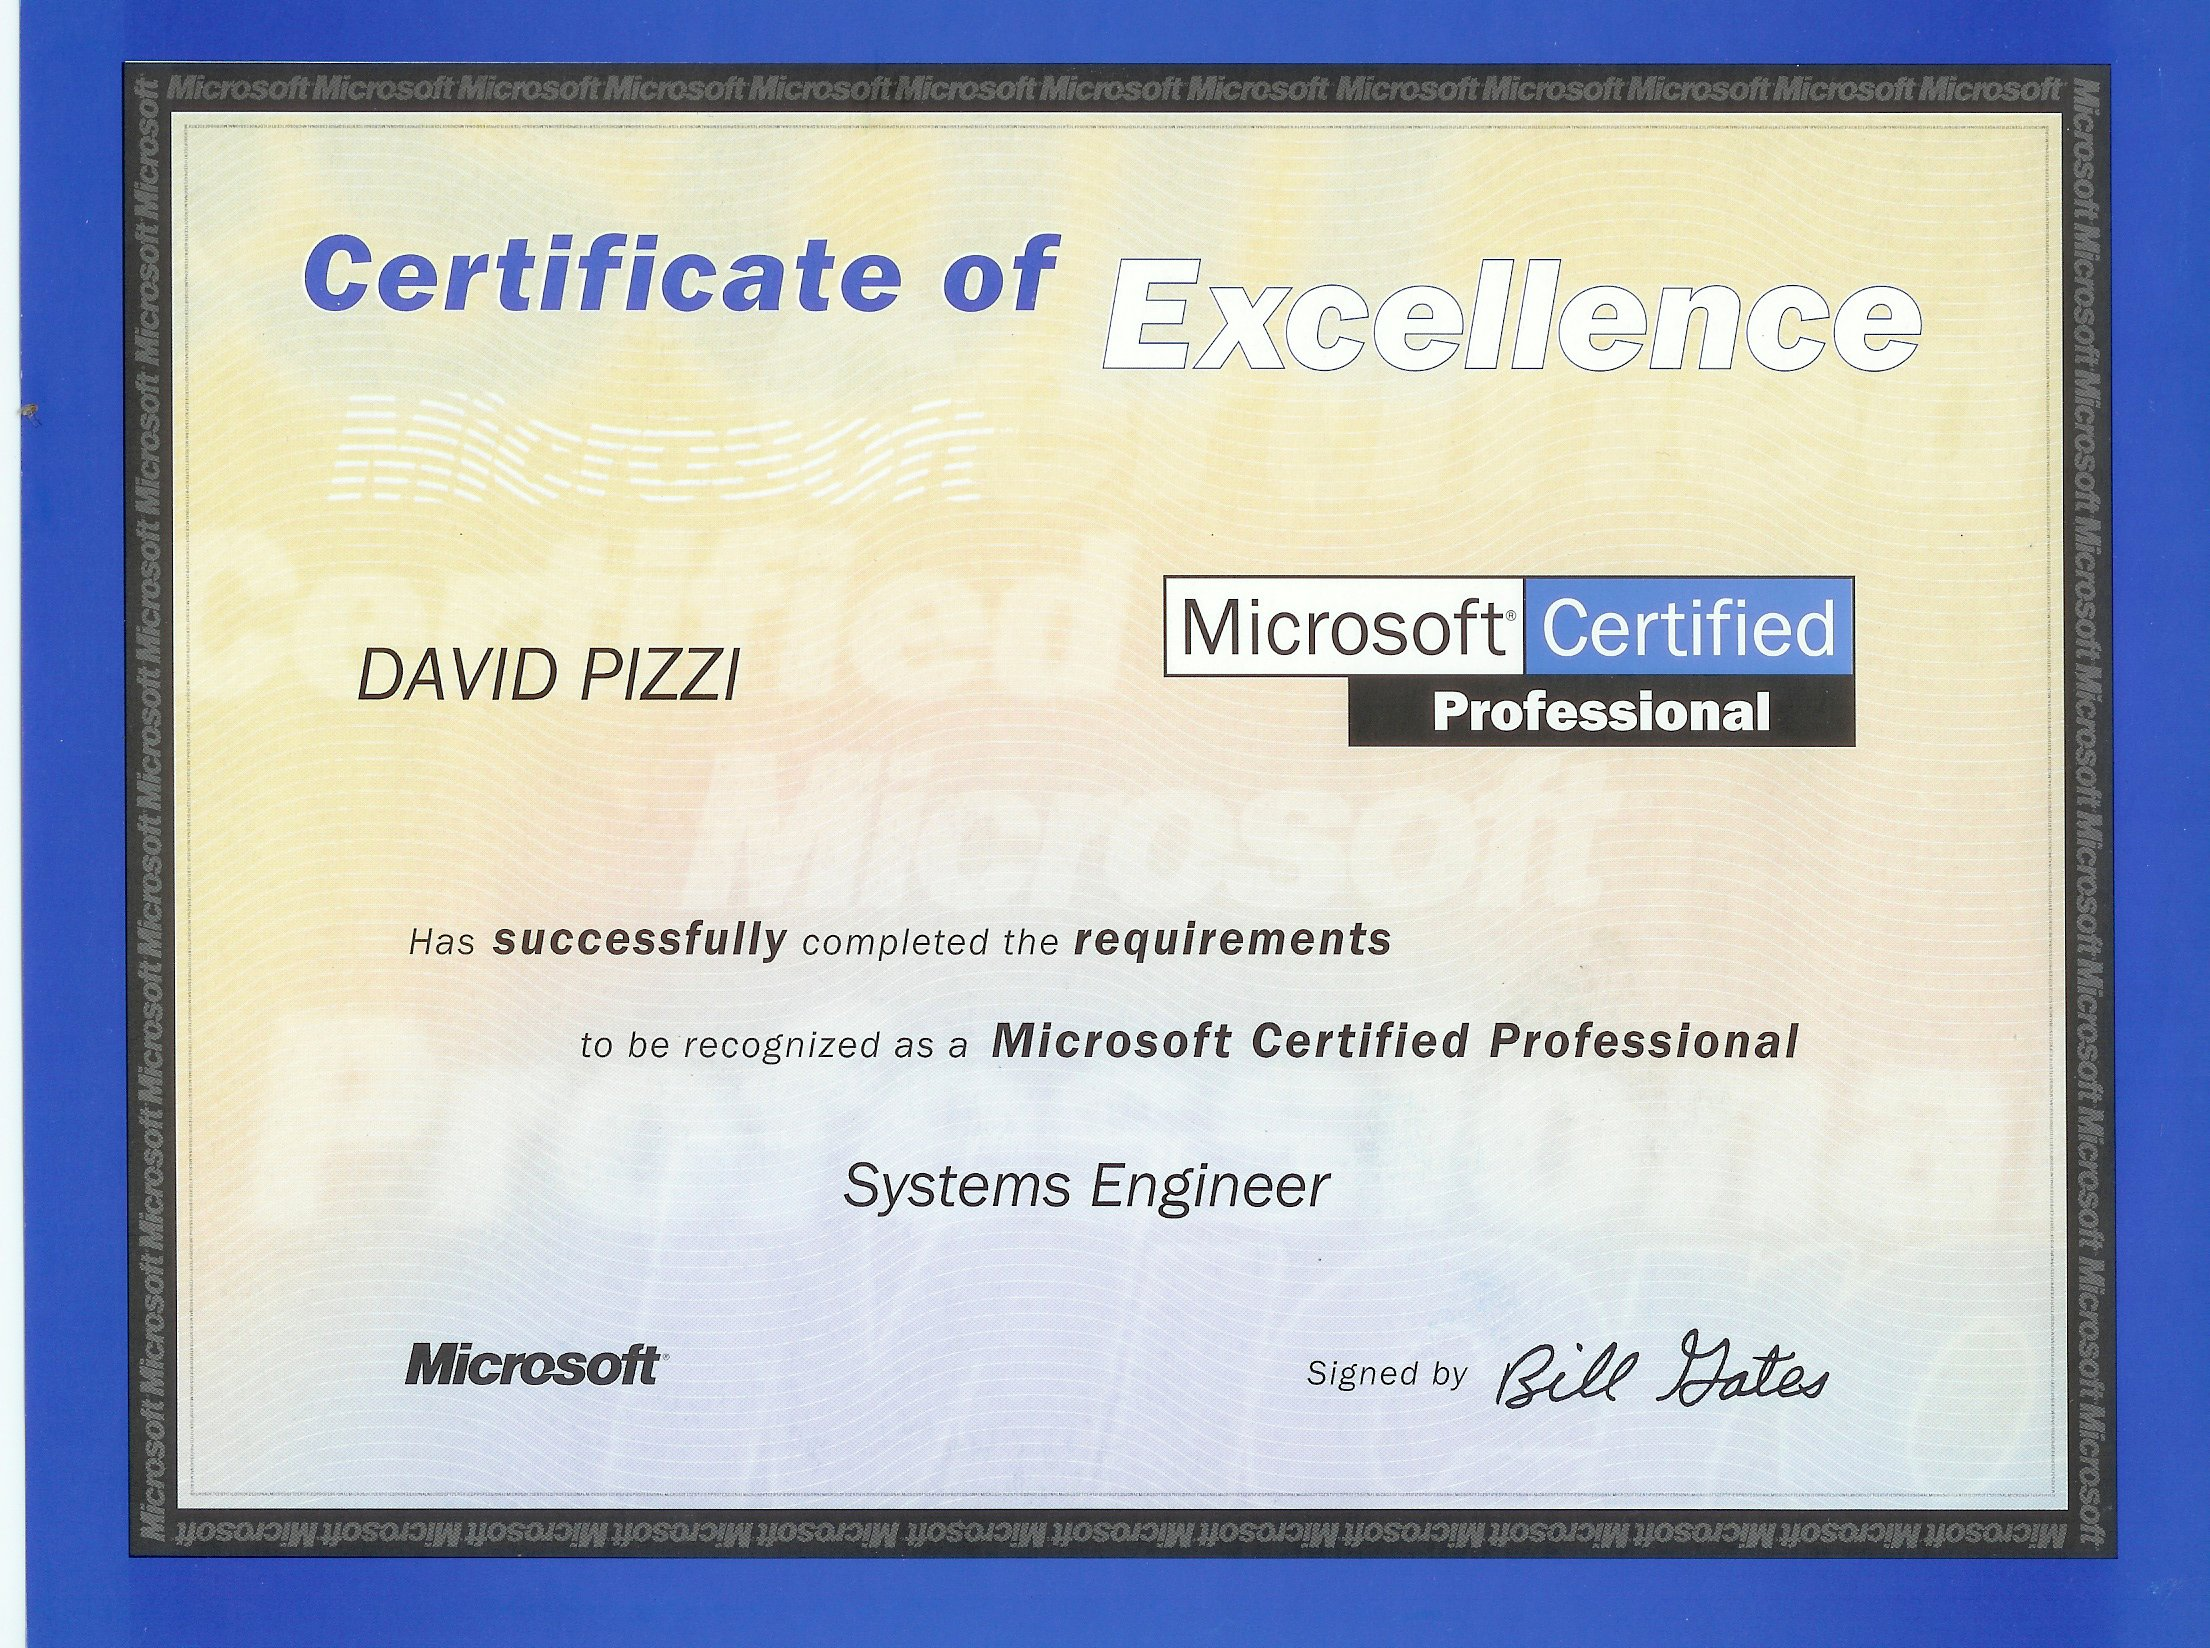 Pizzi consulting microsoft certificates 1betcityfo Images